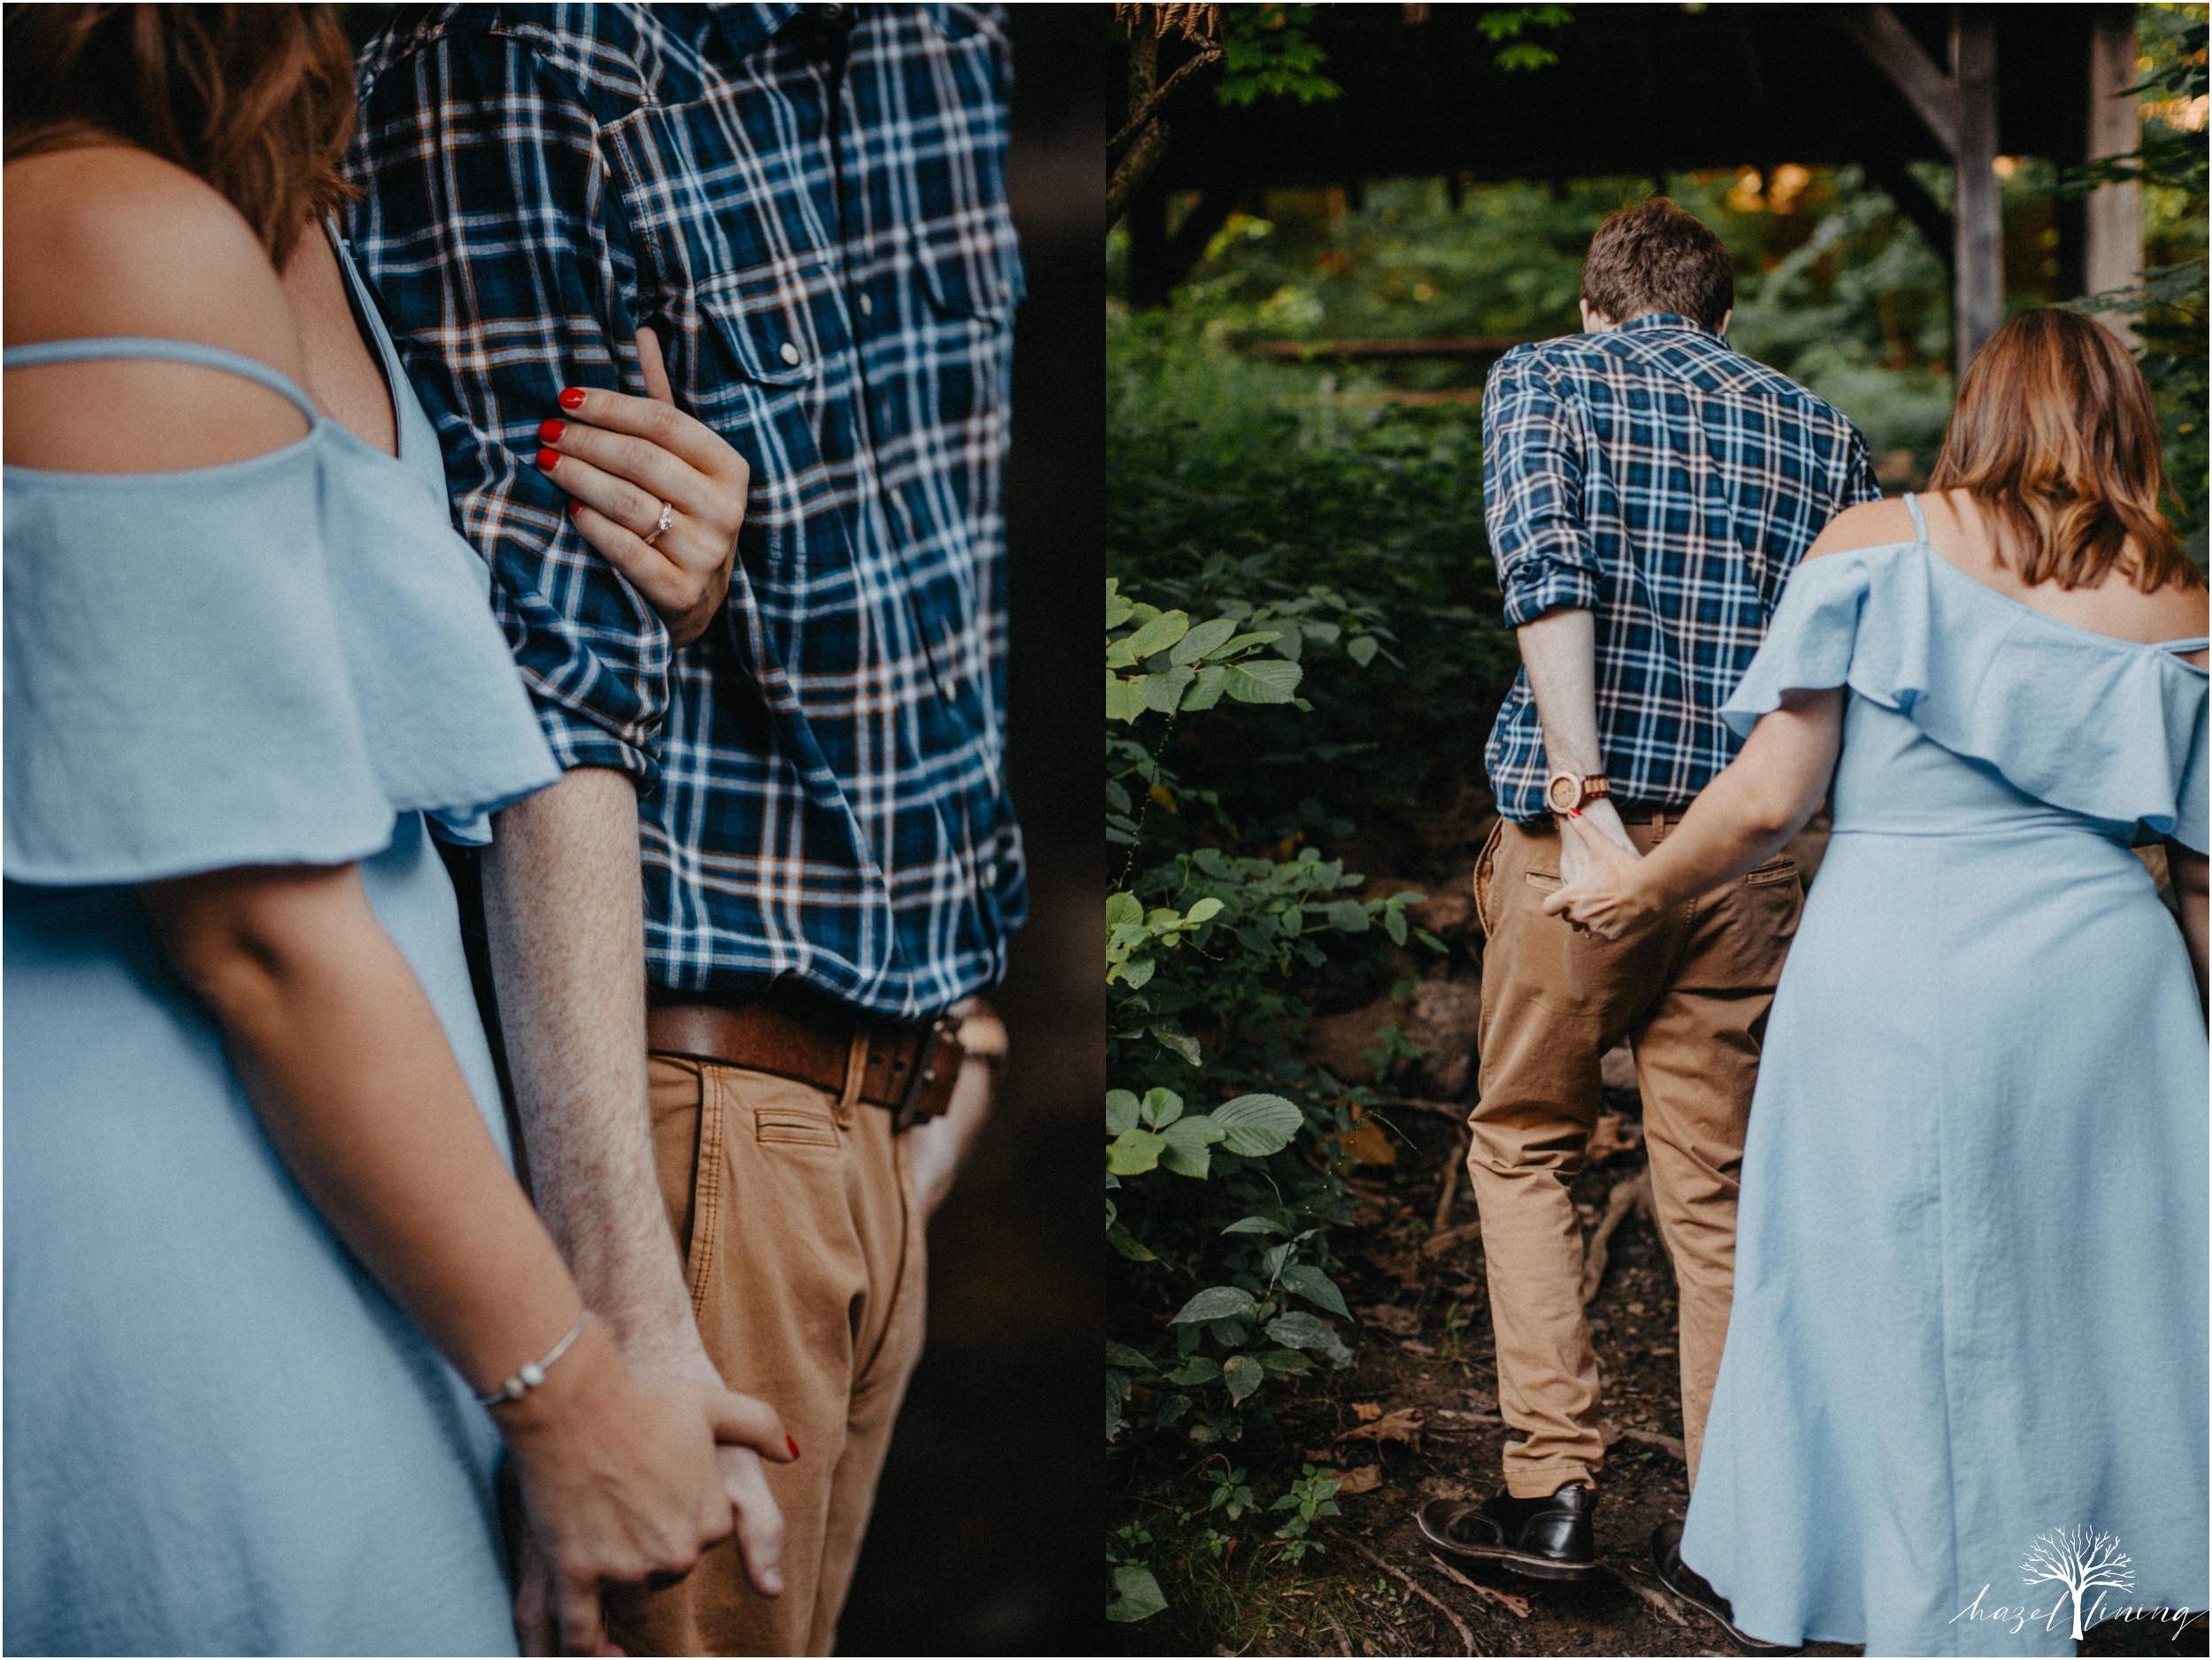 paige-kochey-chris-graham-valley-green-wissahickon-park-philadelphia-summer-engagement-session-hazel-lining-photography-destination-elopement-wedding-engagement-photography_0028.jpg